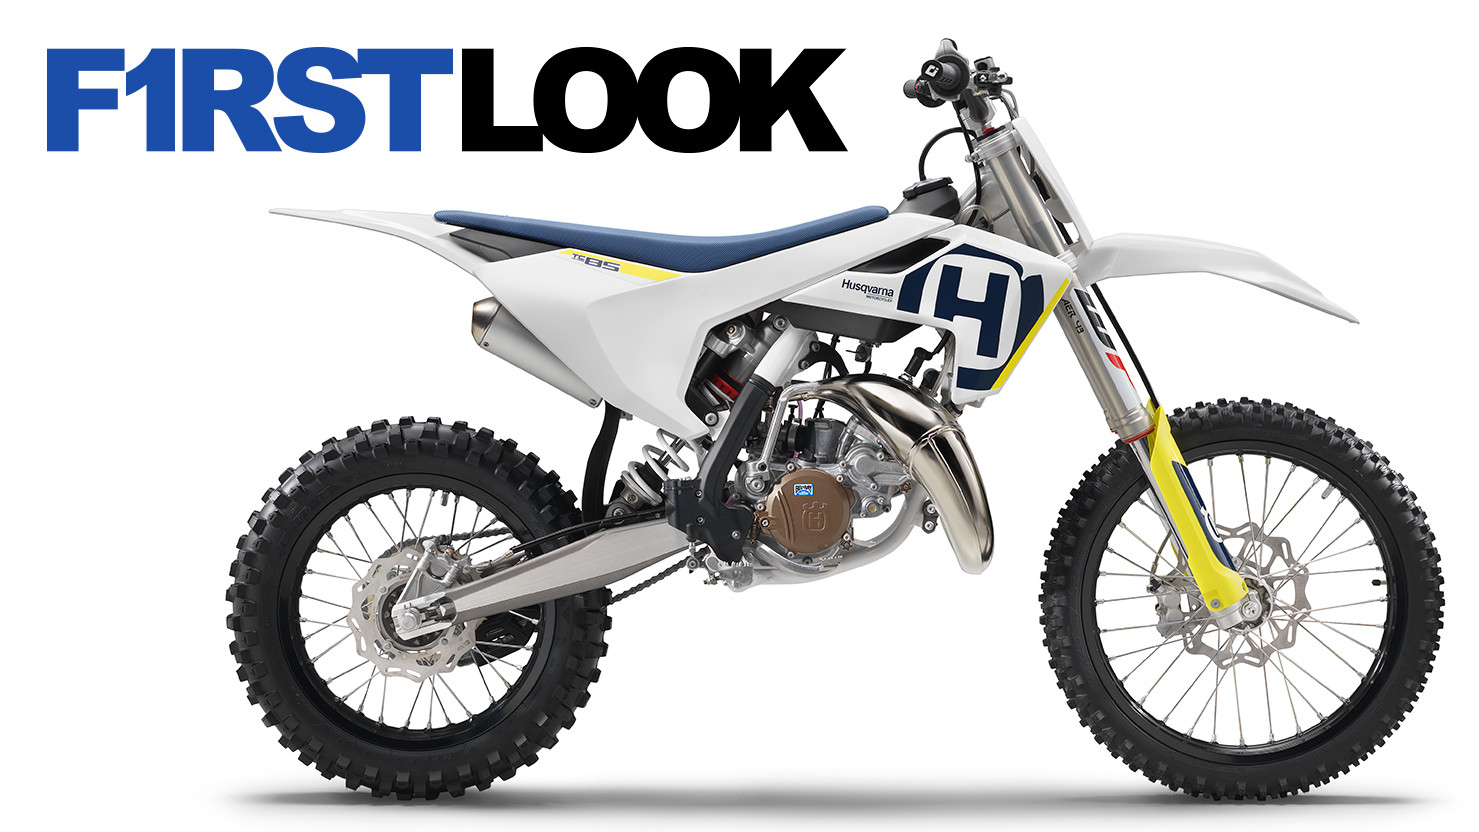 First Look: 2018 Husqvarna Motocross Models